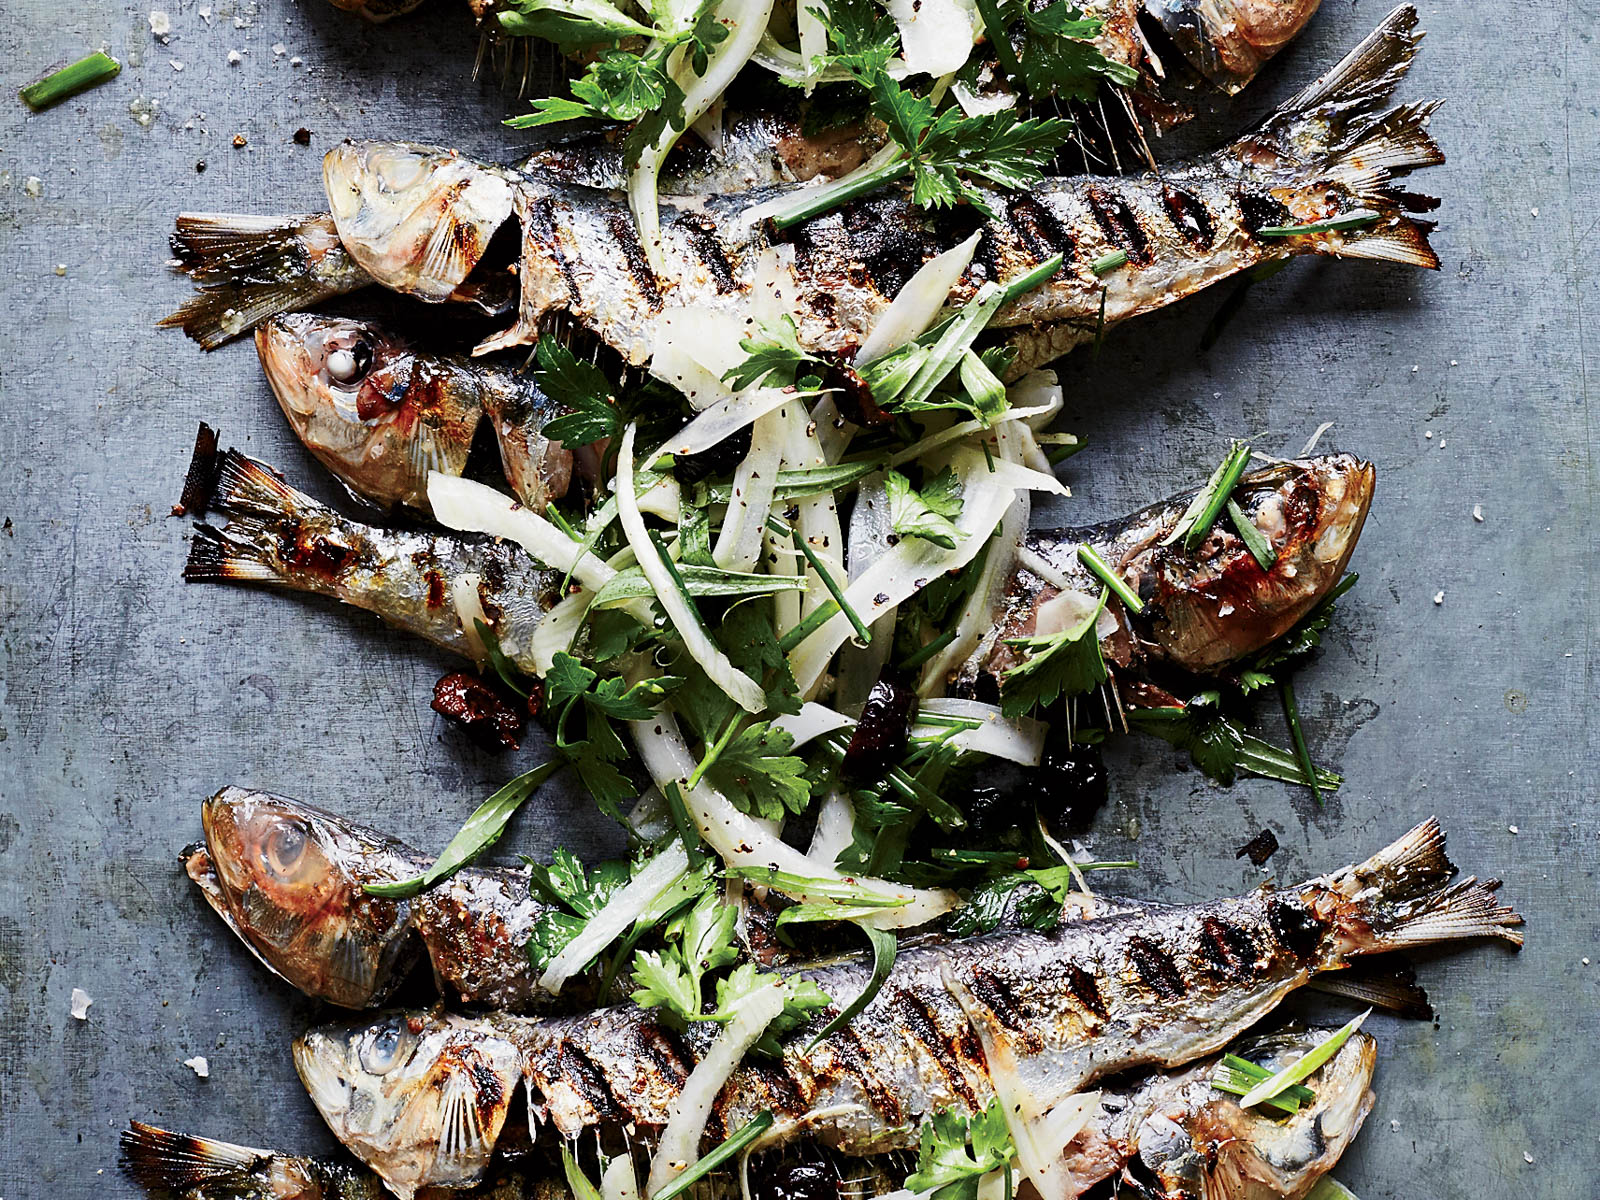 Grilled Sardines with Herbed Fennel and Olive Salad